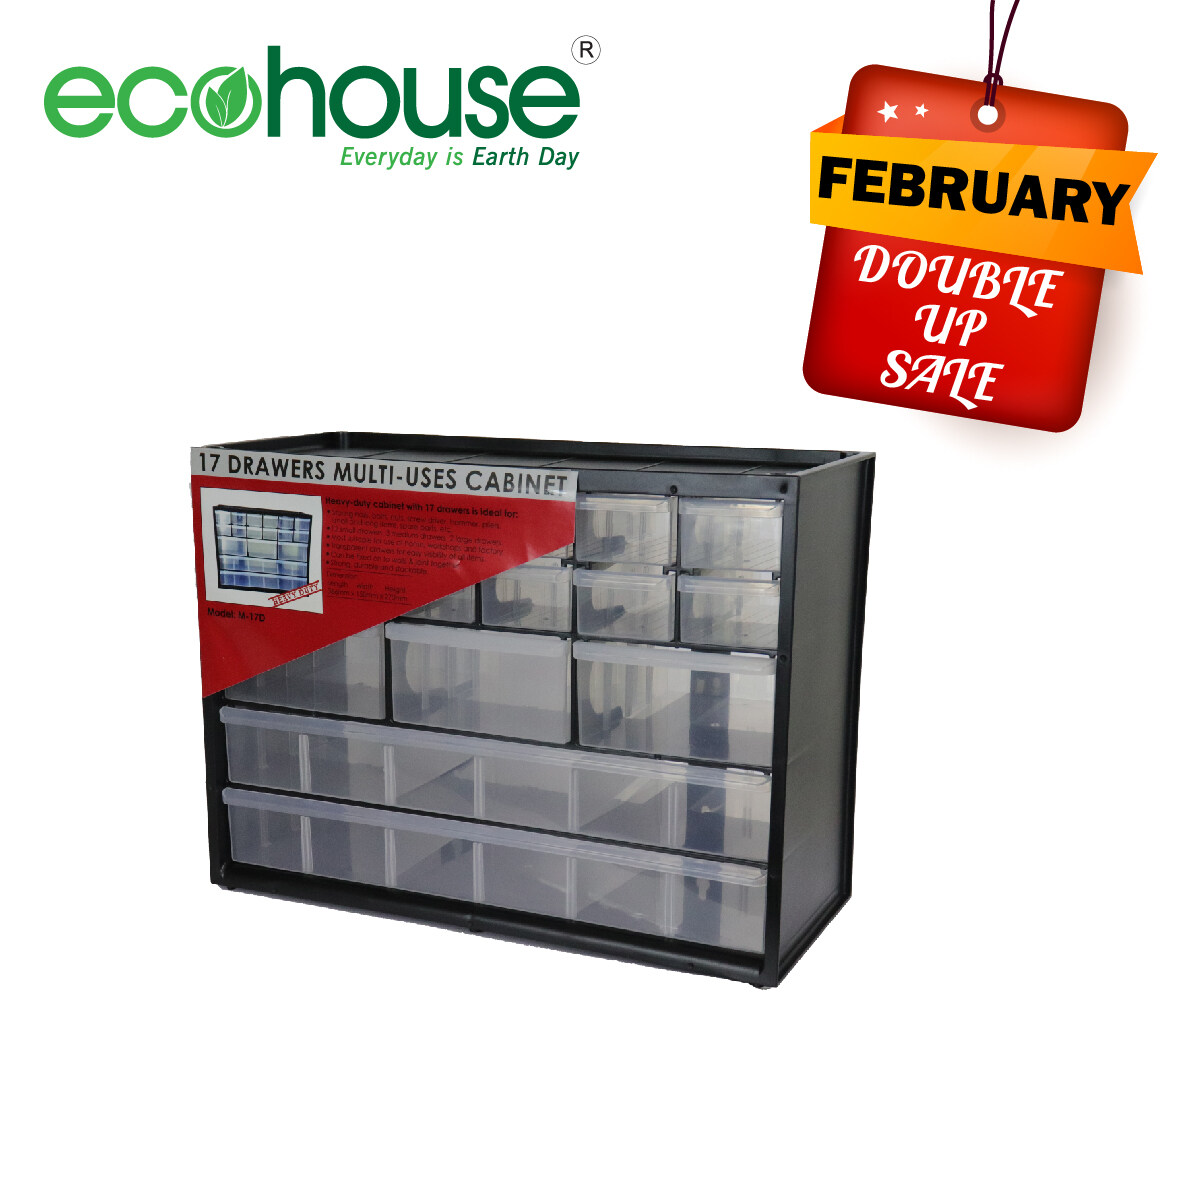 17 Drawers Multi-uses Cabinet